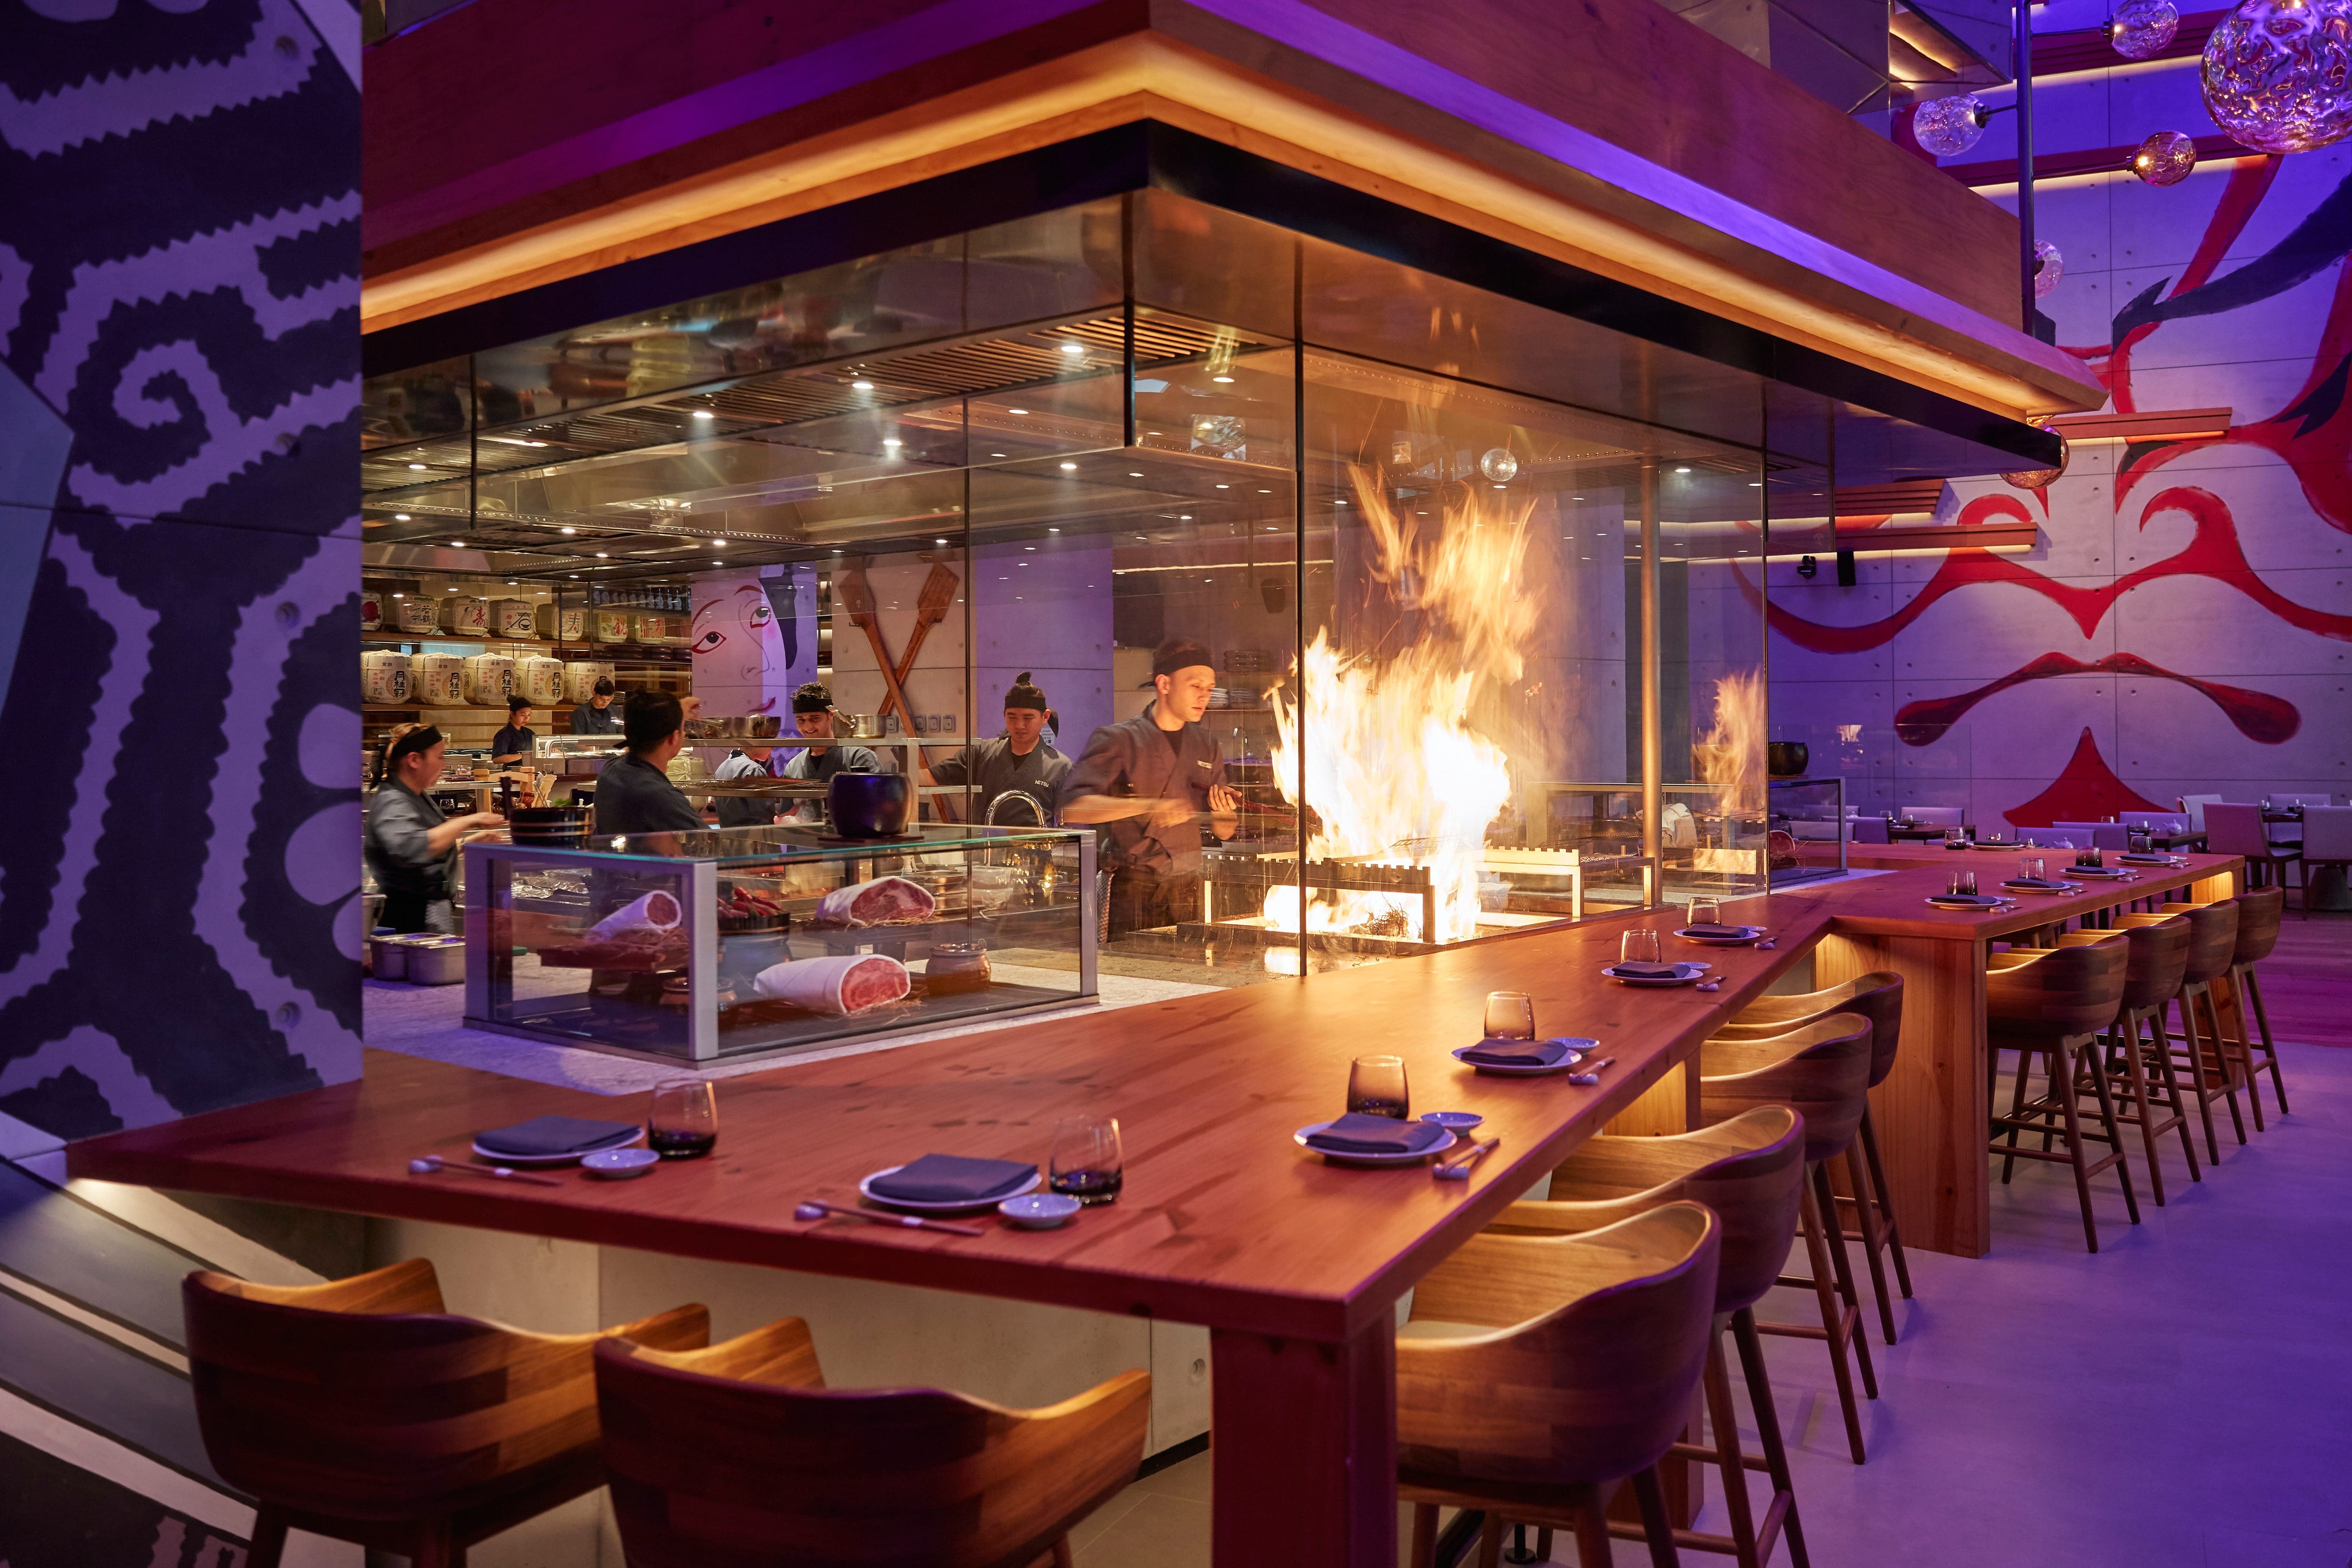 open kitchen with flames